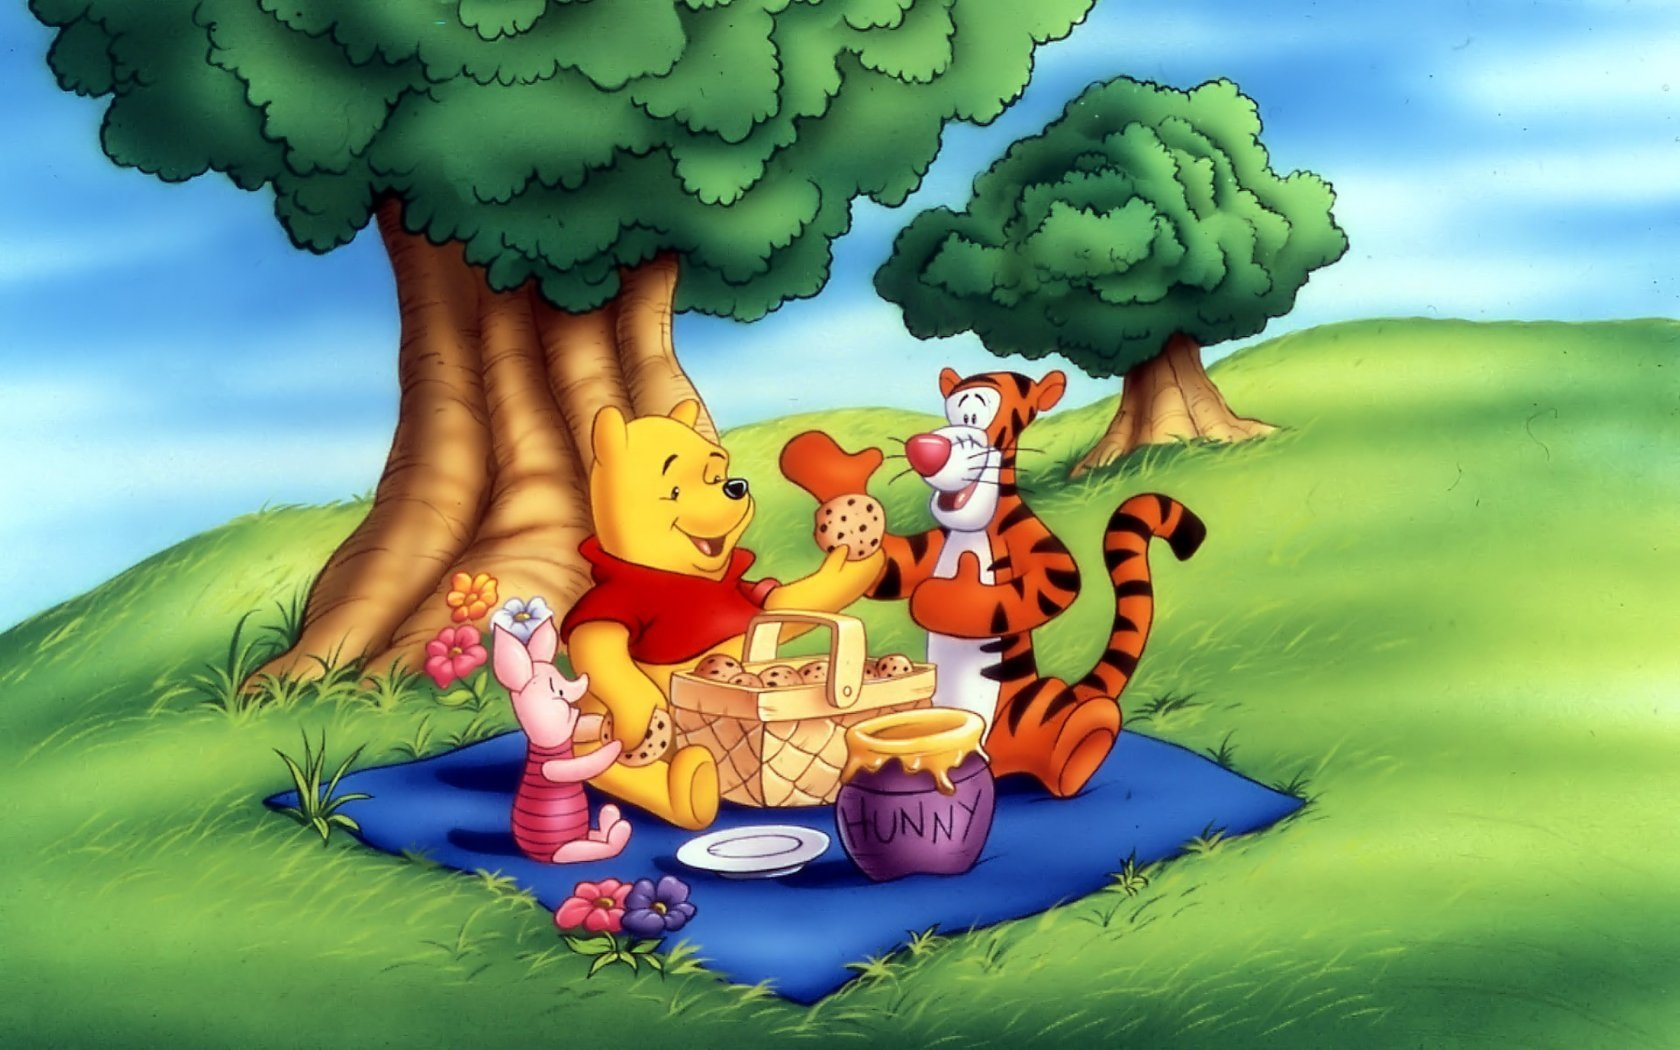 75 Winnie The Pooh Hd Wallpapers Background Images Wallpaper Abyss